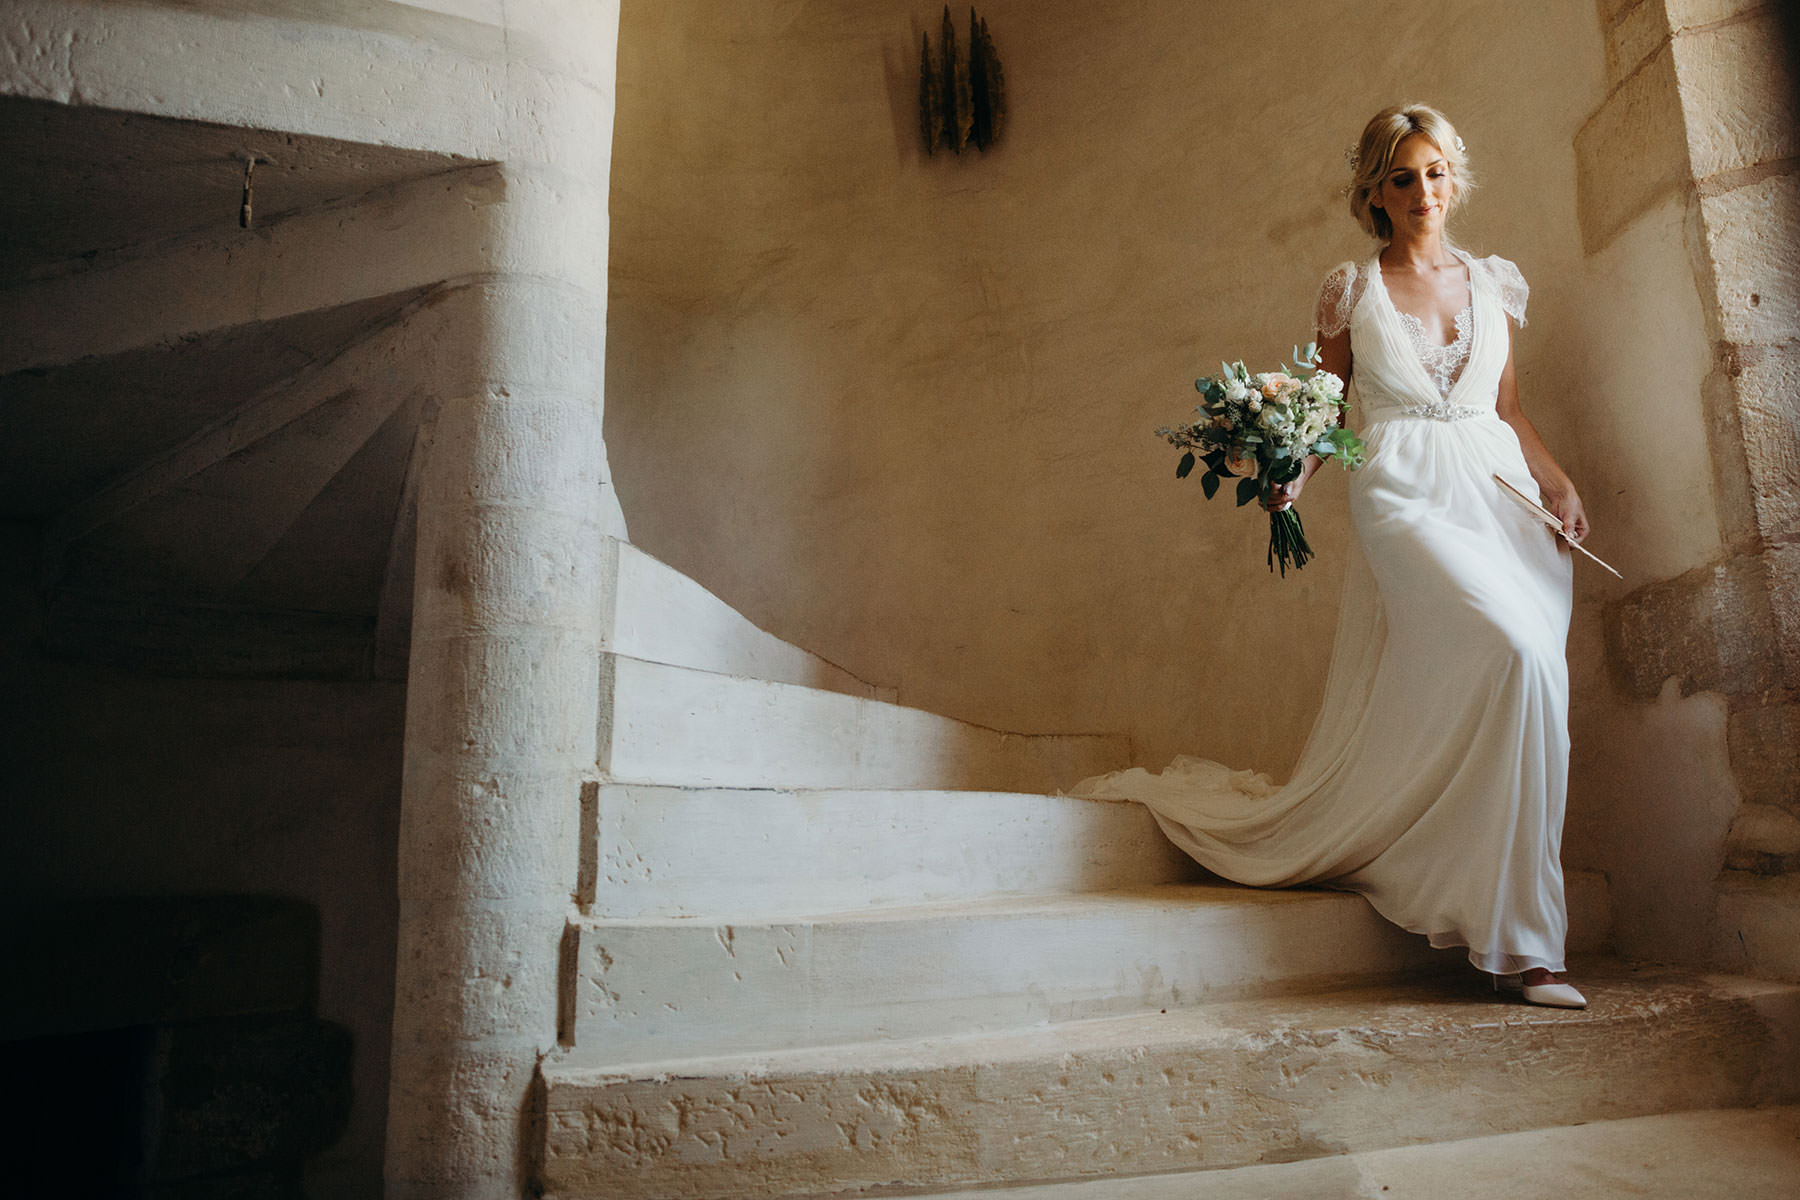 Bride walks down stairs at Chateau destination wedding